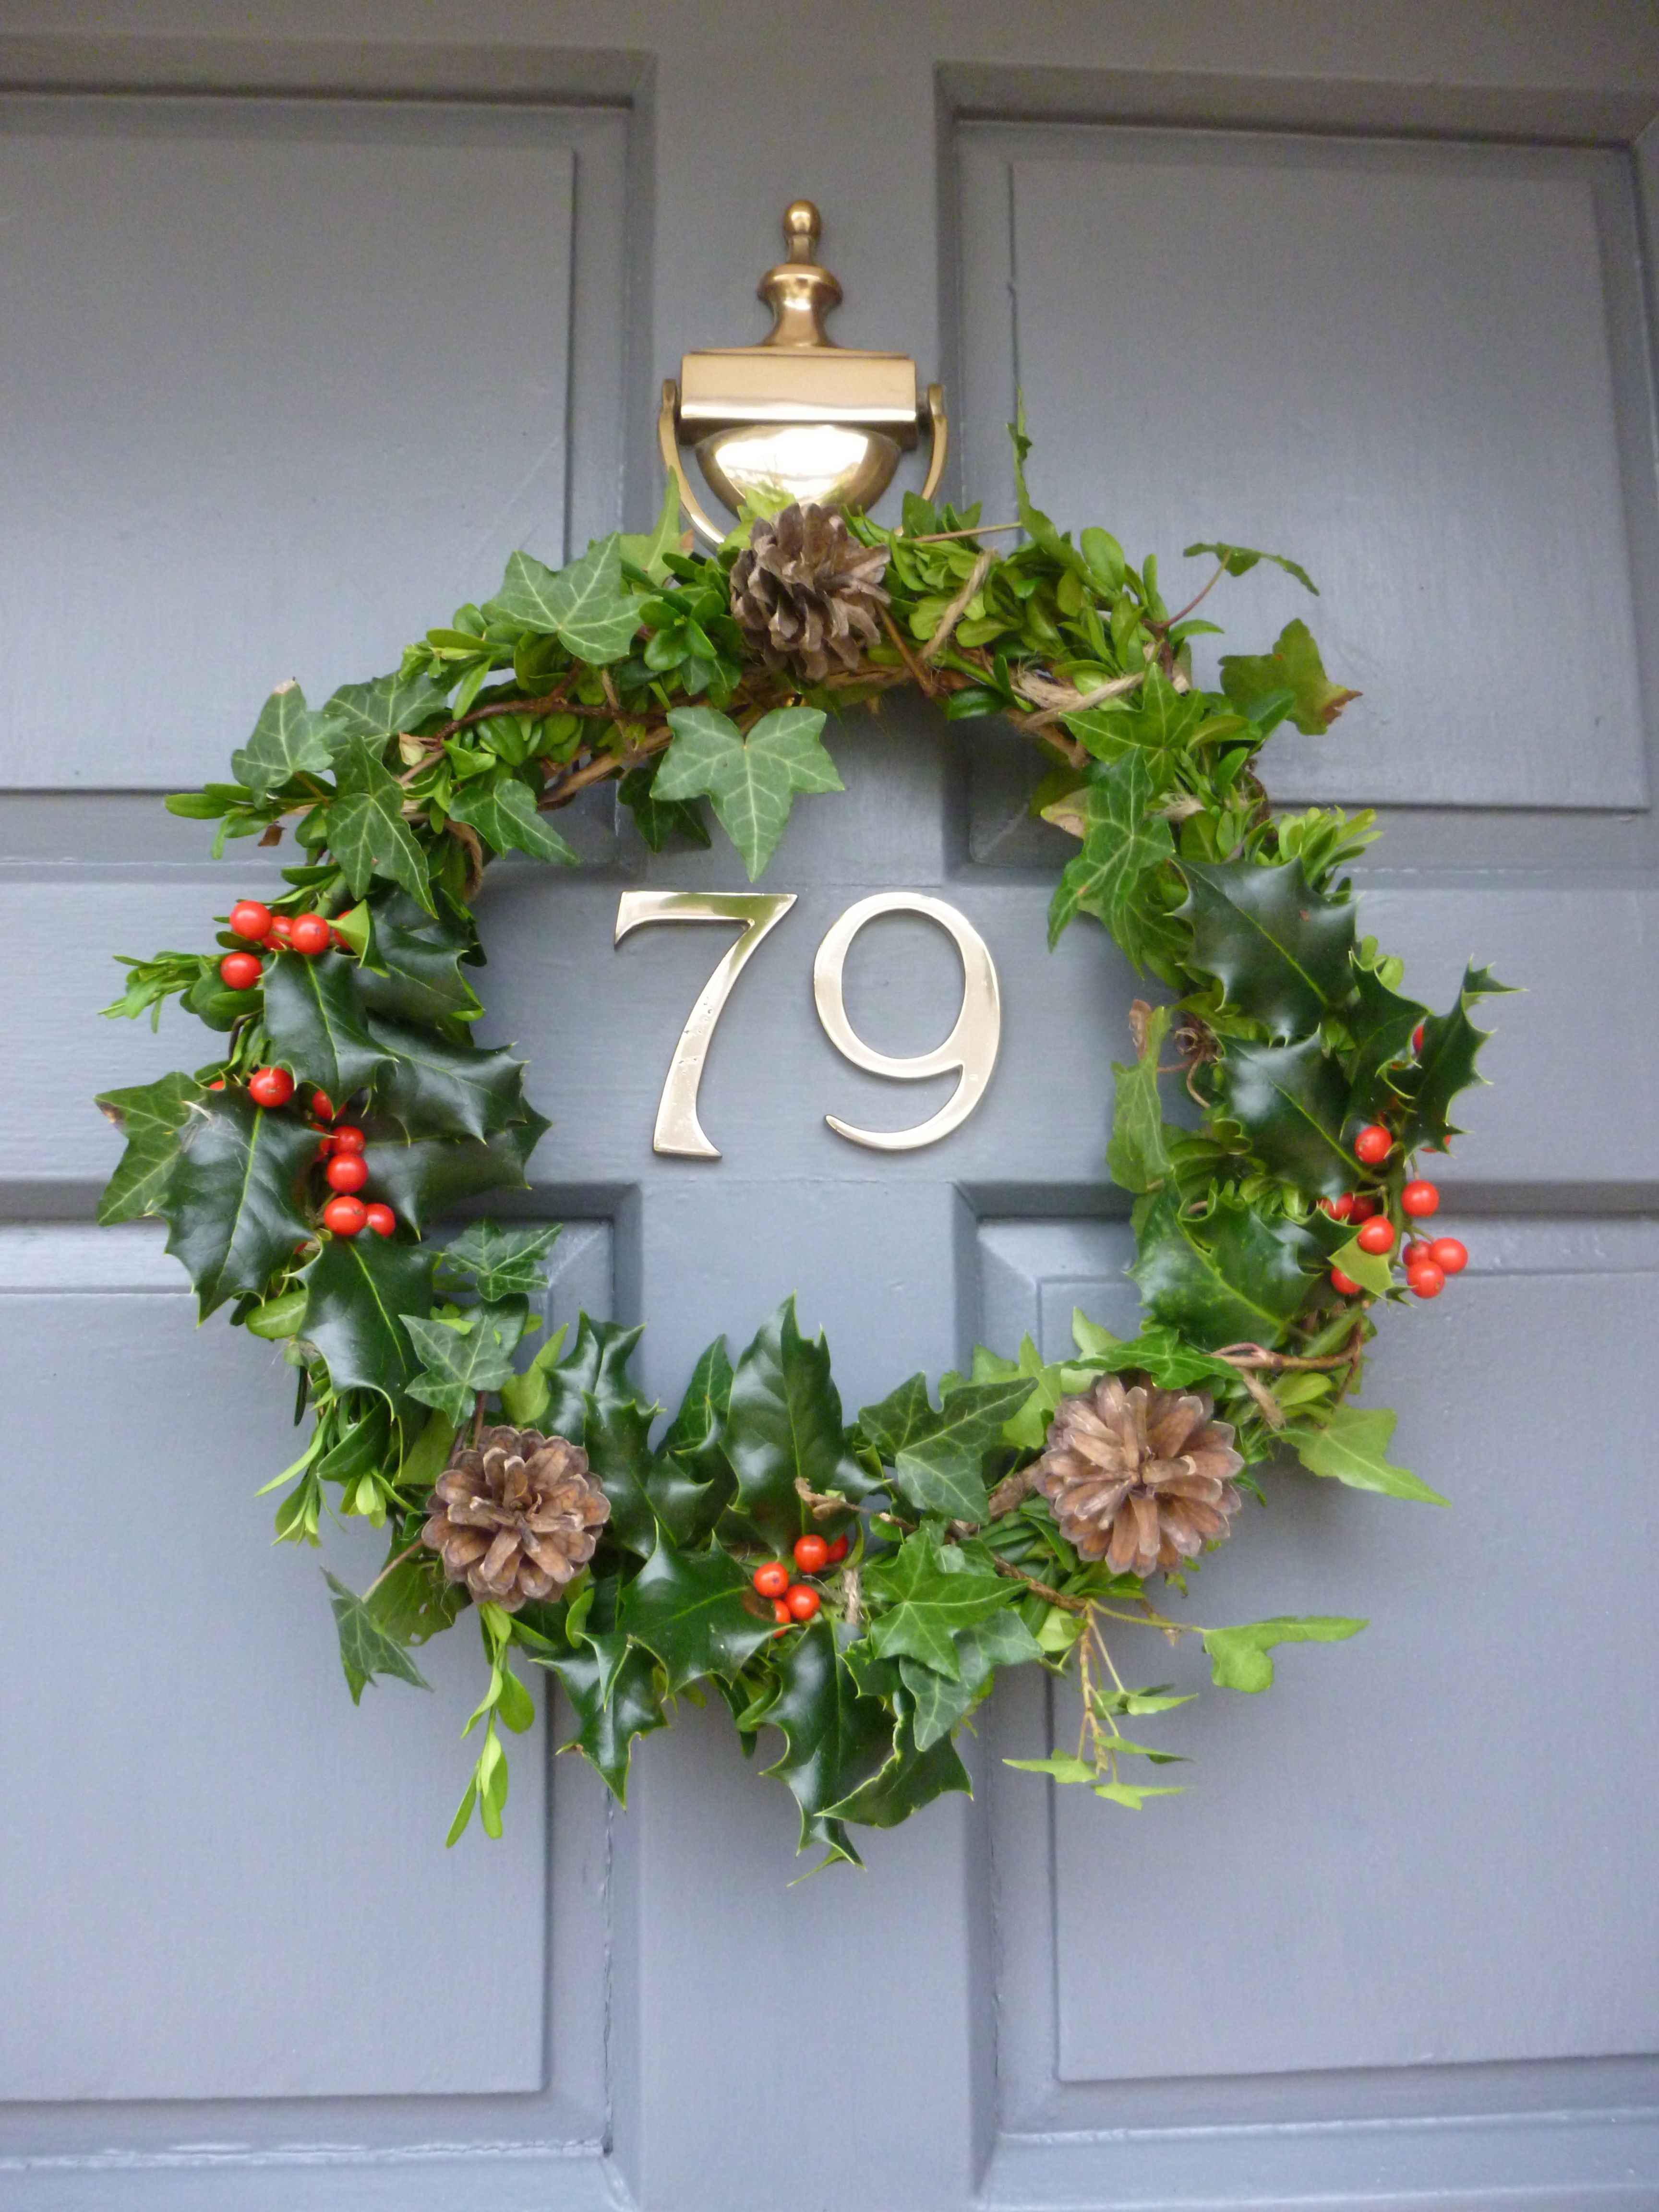 Home made wreath foraged from the garden - holly, ivy and sprigs of box.